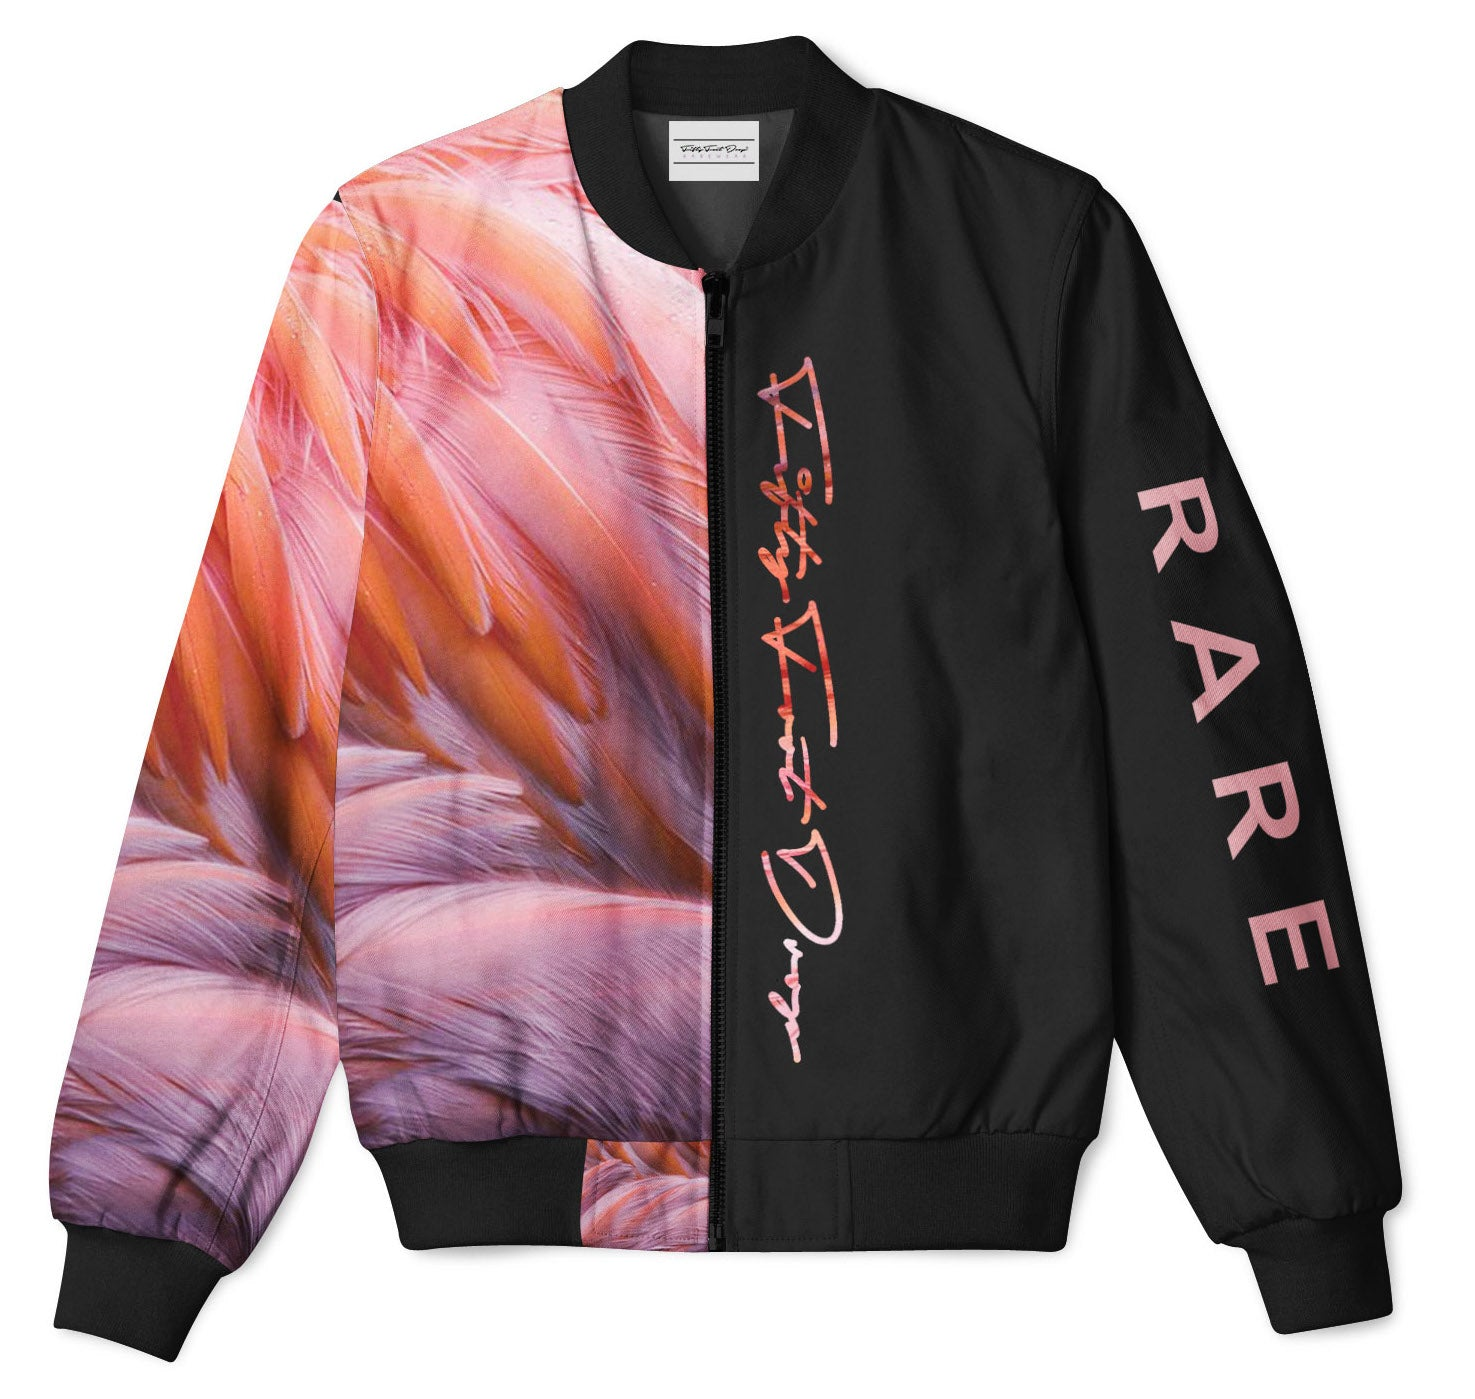 HALF ANIMAL HALF AMAZING - FIFTY FOOT DROP - FLAMINGO BOMBER JACKET  Fifty Foot Drop  fresh-on-road.myshopify.com Fifty Foot Drop